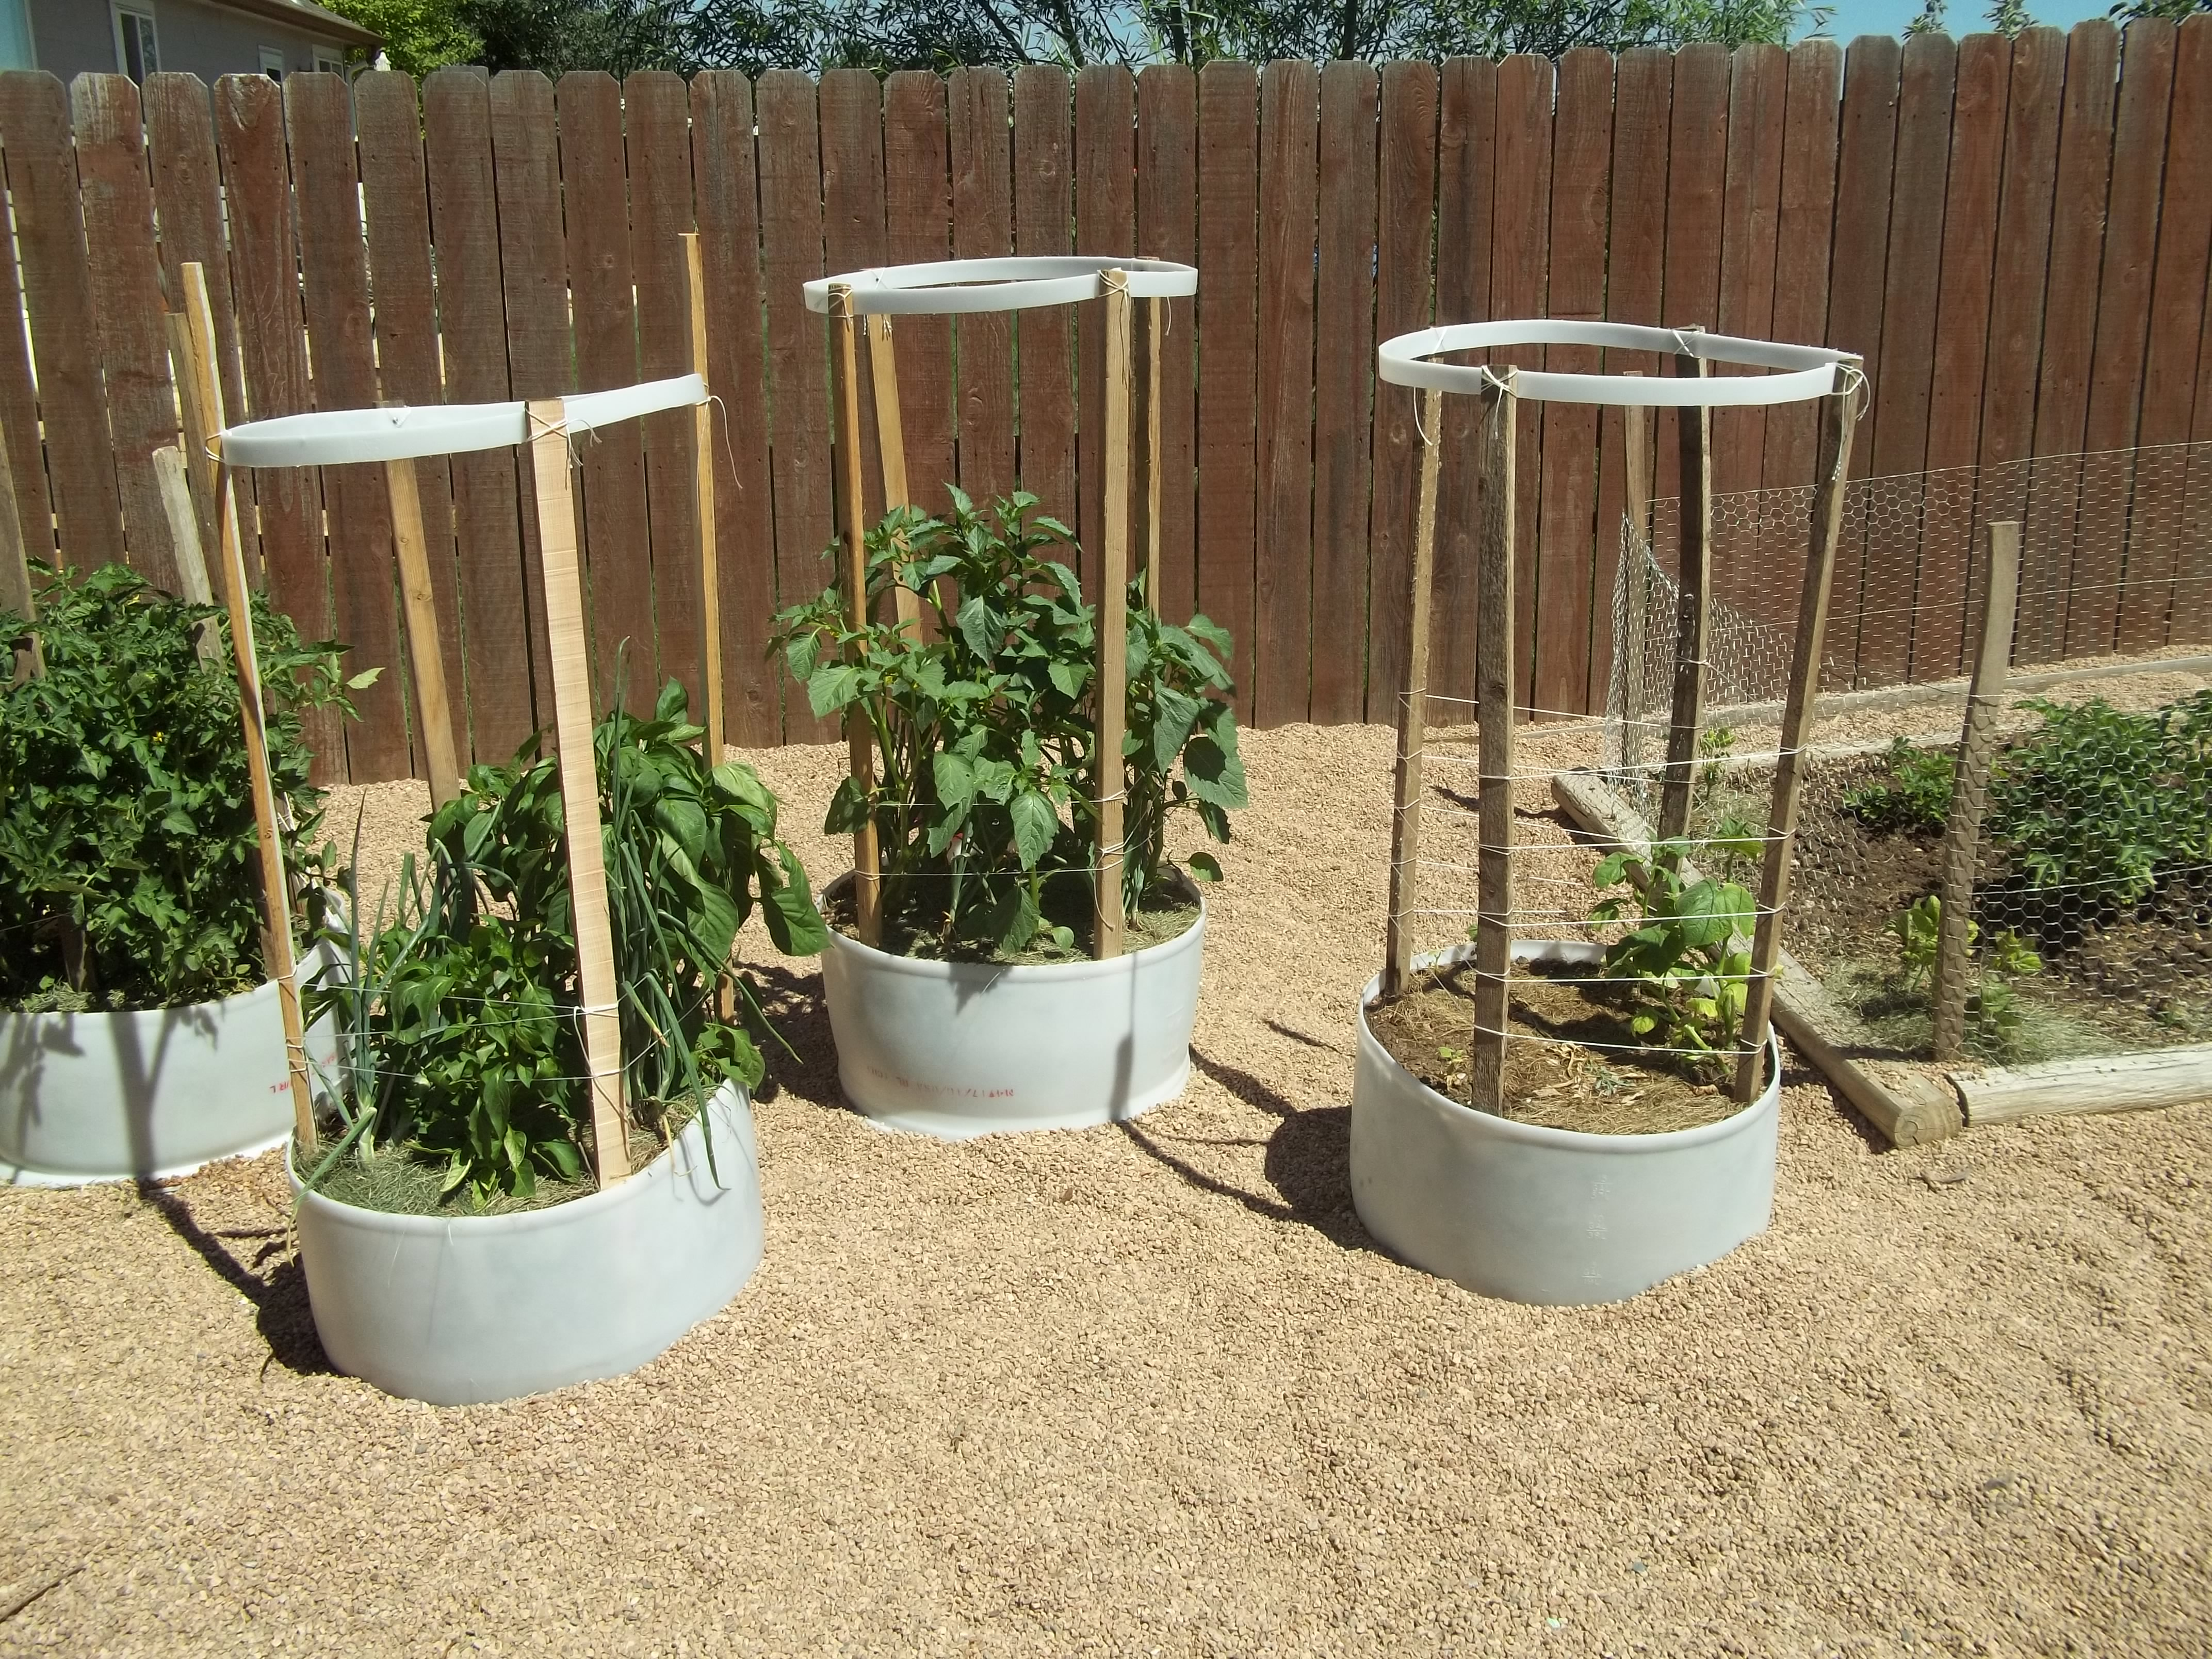 Gardening | His and Hers Homesteading | Page 4